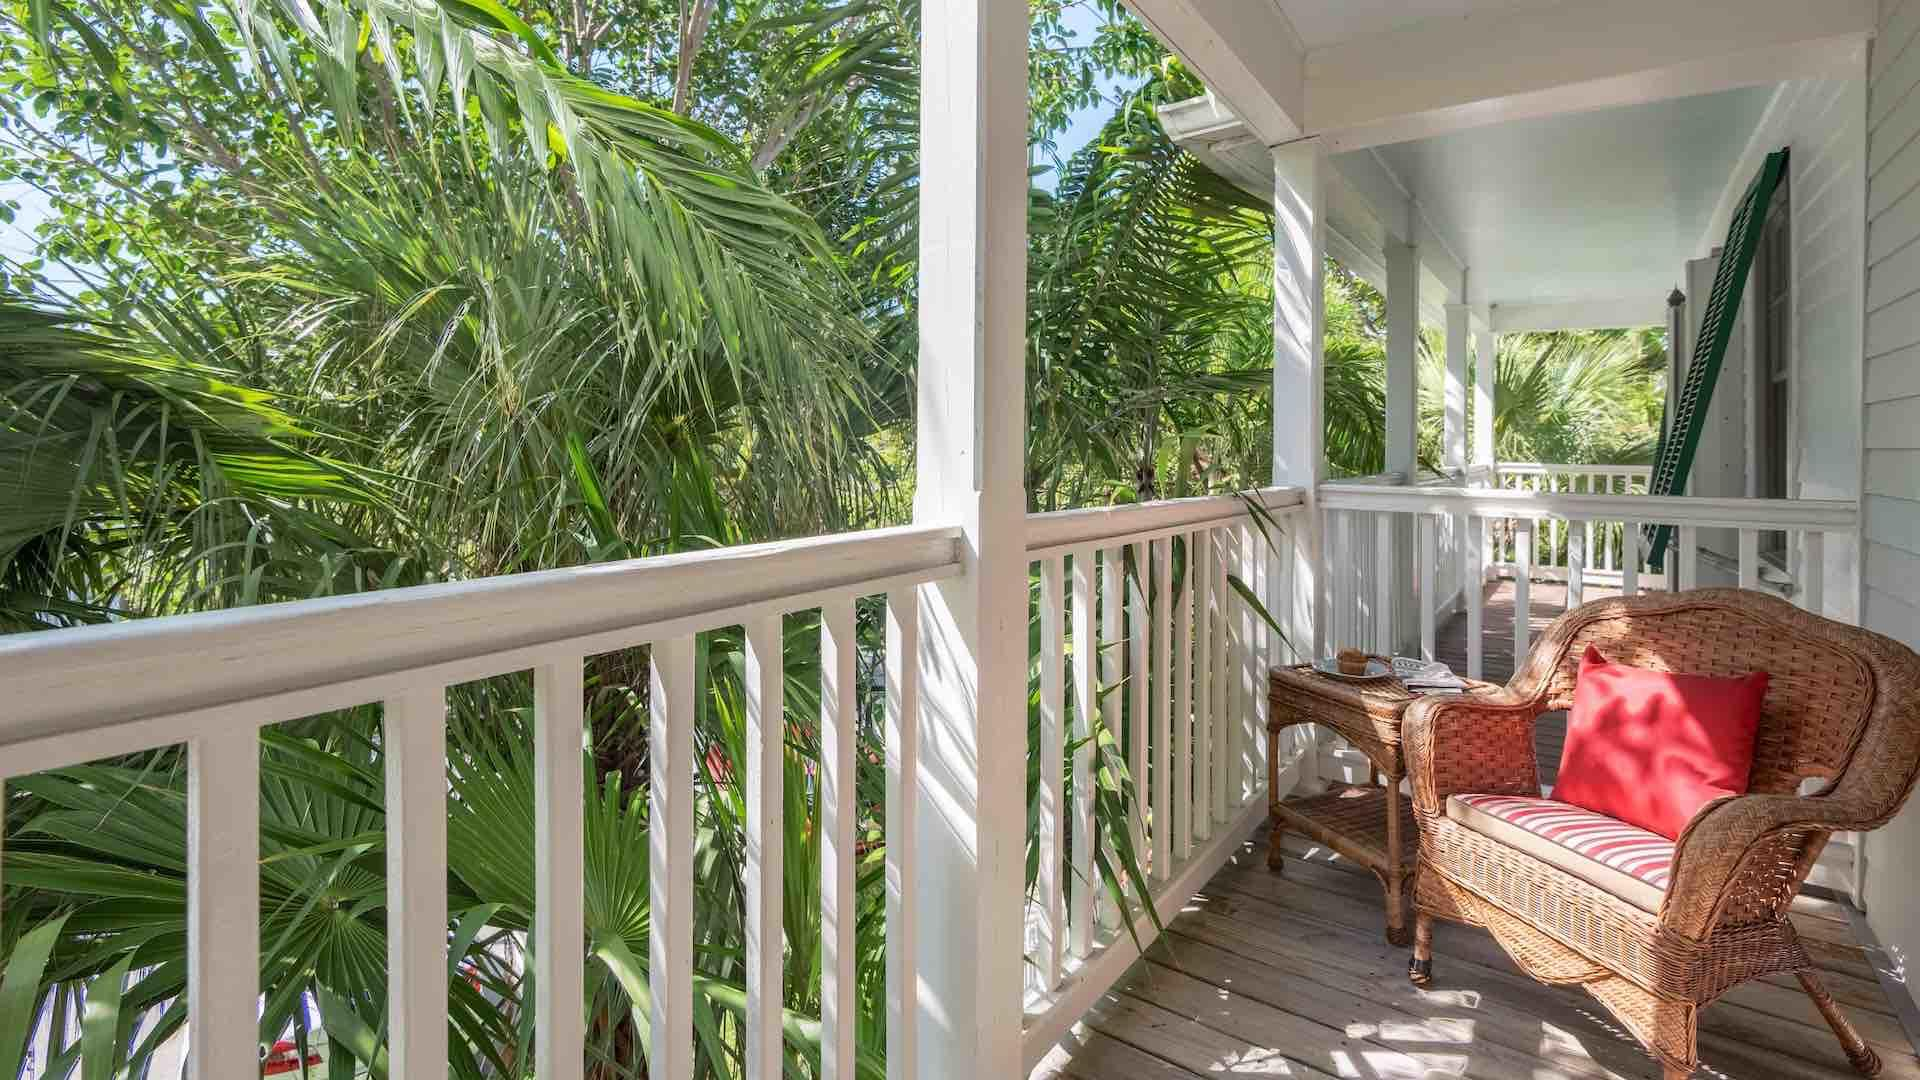 The second bedroom balcony is the perfect place to sip your morning coffee...